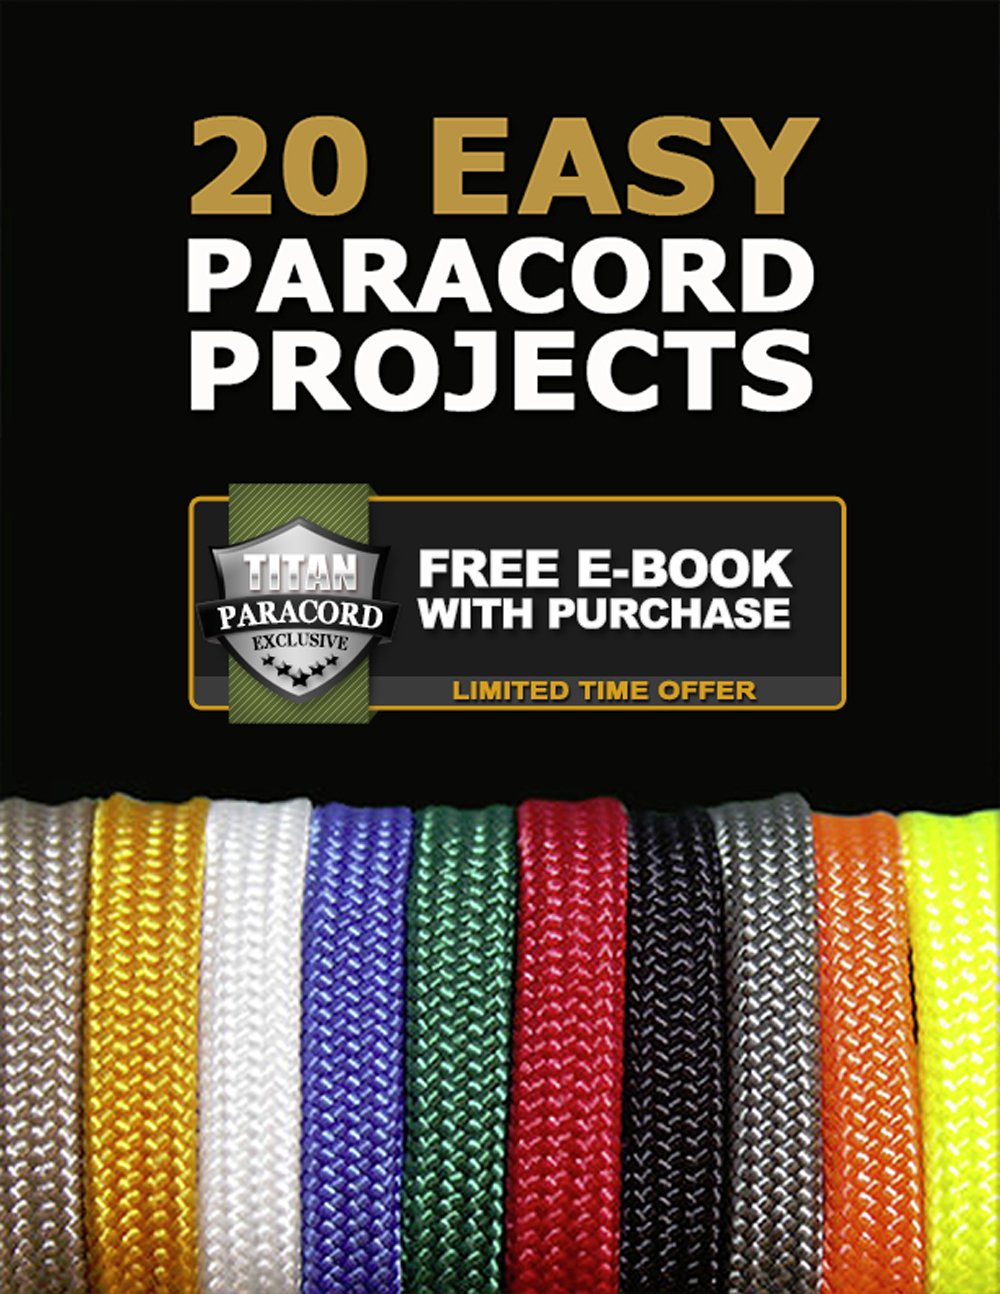 Titan WarriorCord | White | 103 Continuous FEET | Exceeds Authentic MIL-C-5040, Type III 550 Paracord Standards. 7 Strand, 5/32'' (4mm) Diameter, Military Parachute Cord. by Titan Paracord (Image #9)